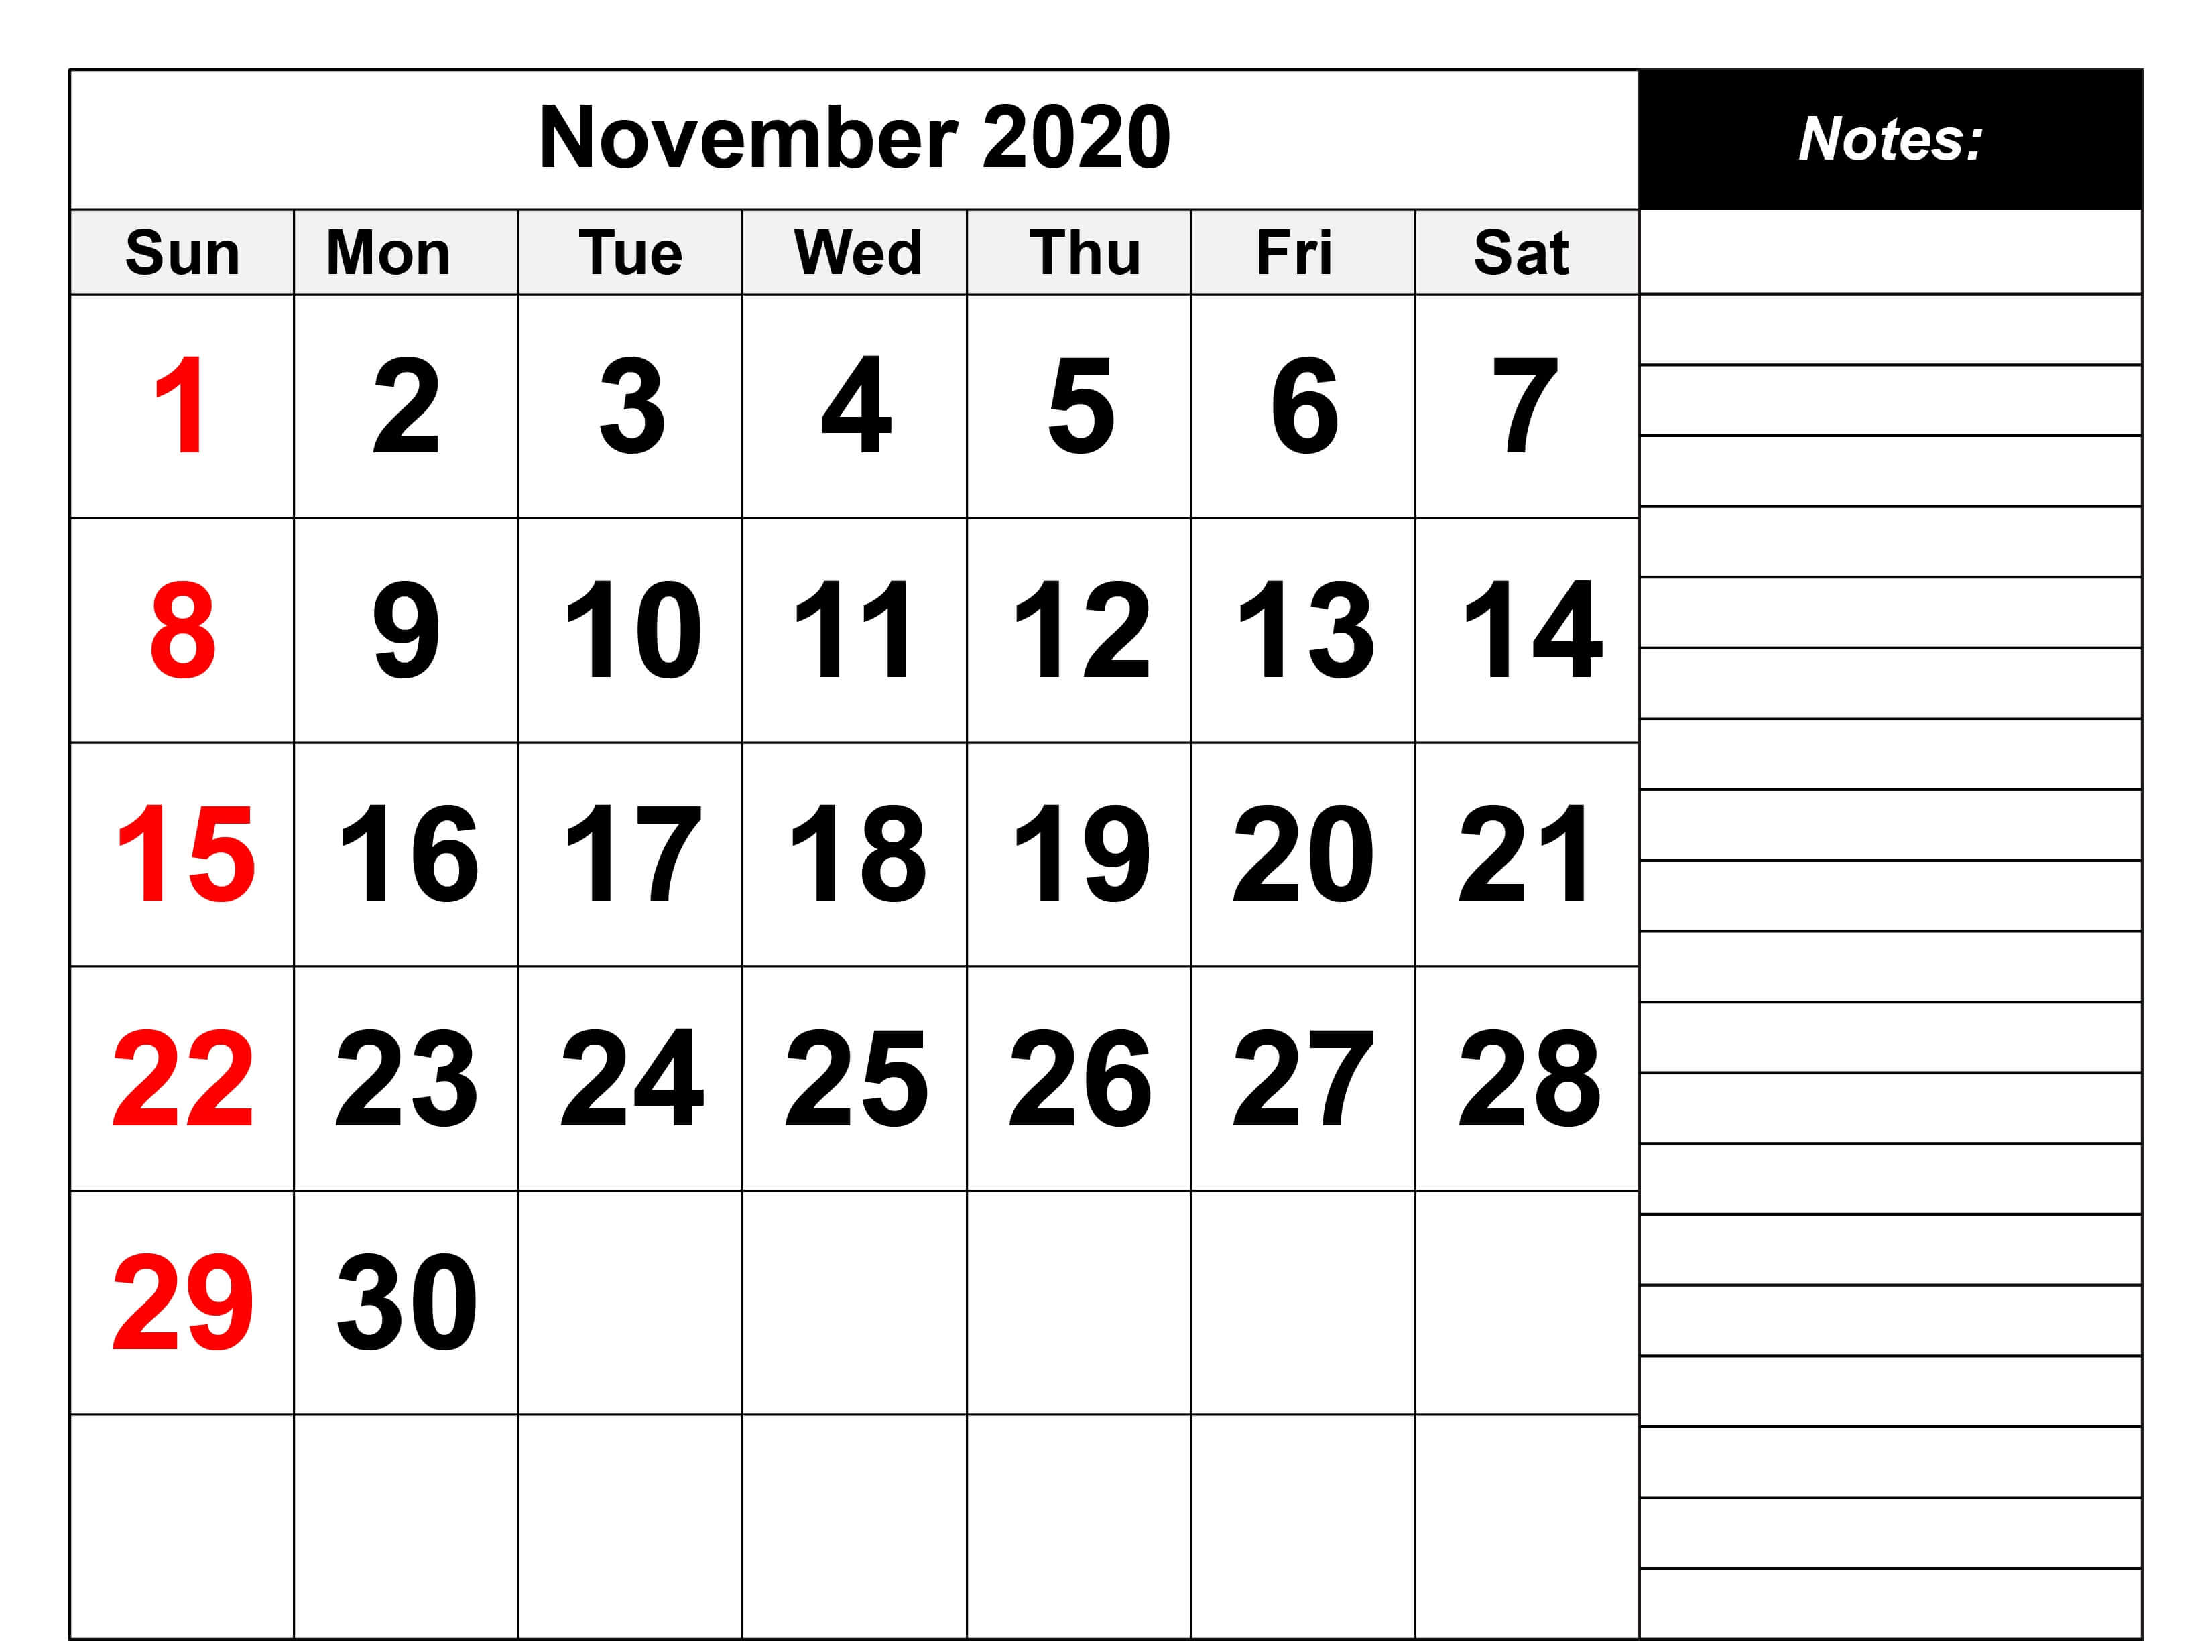 November 2020 Printable Calendar with Notes